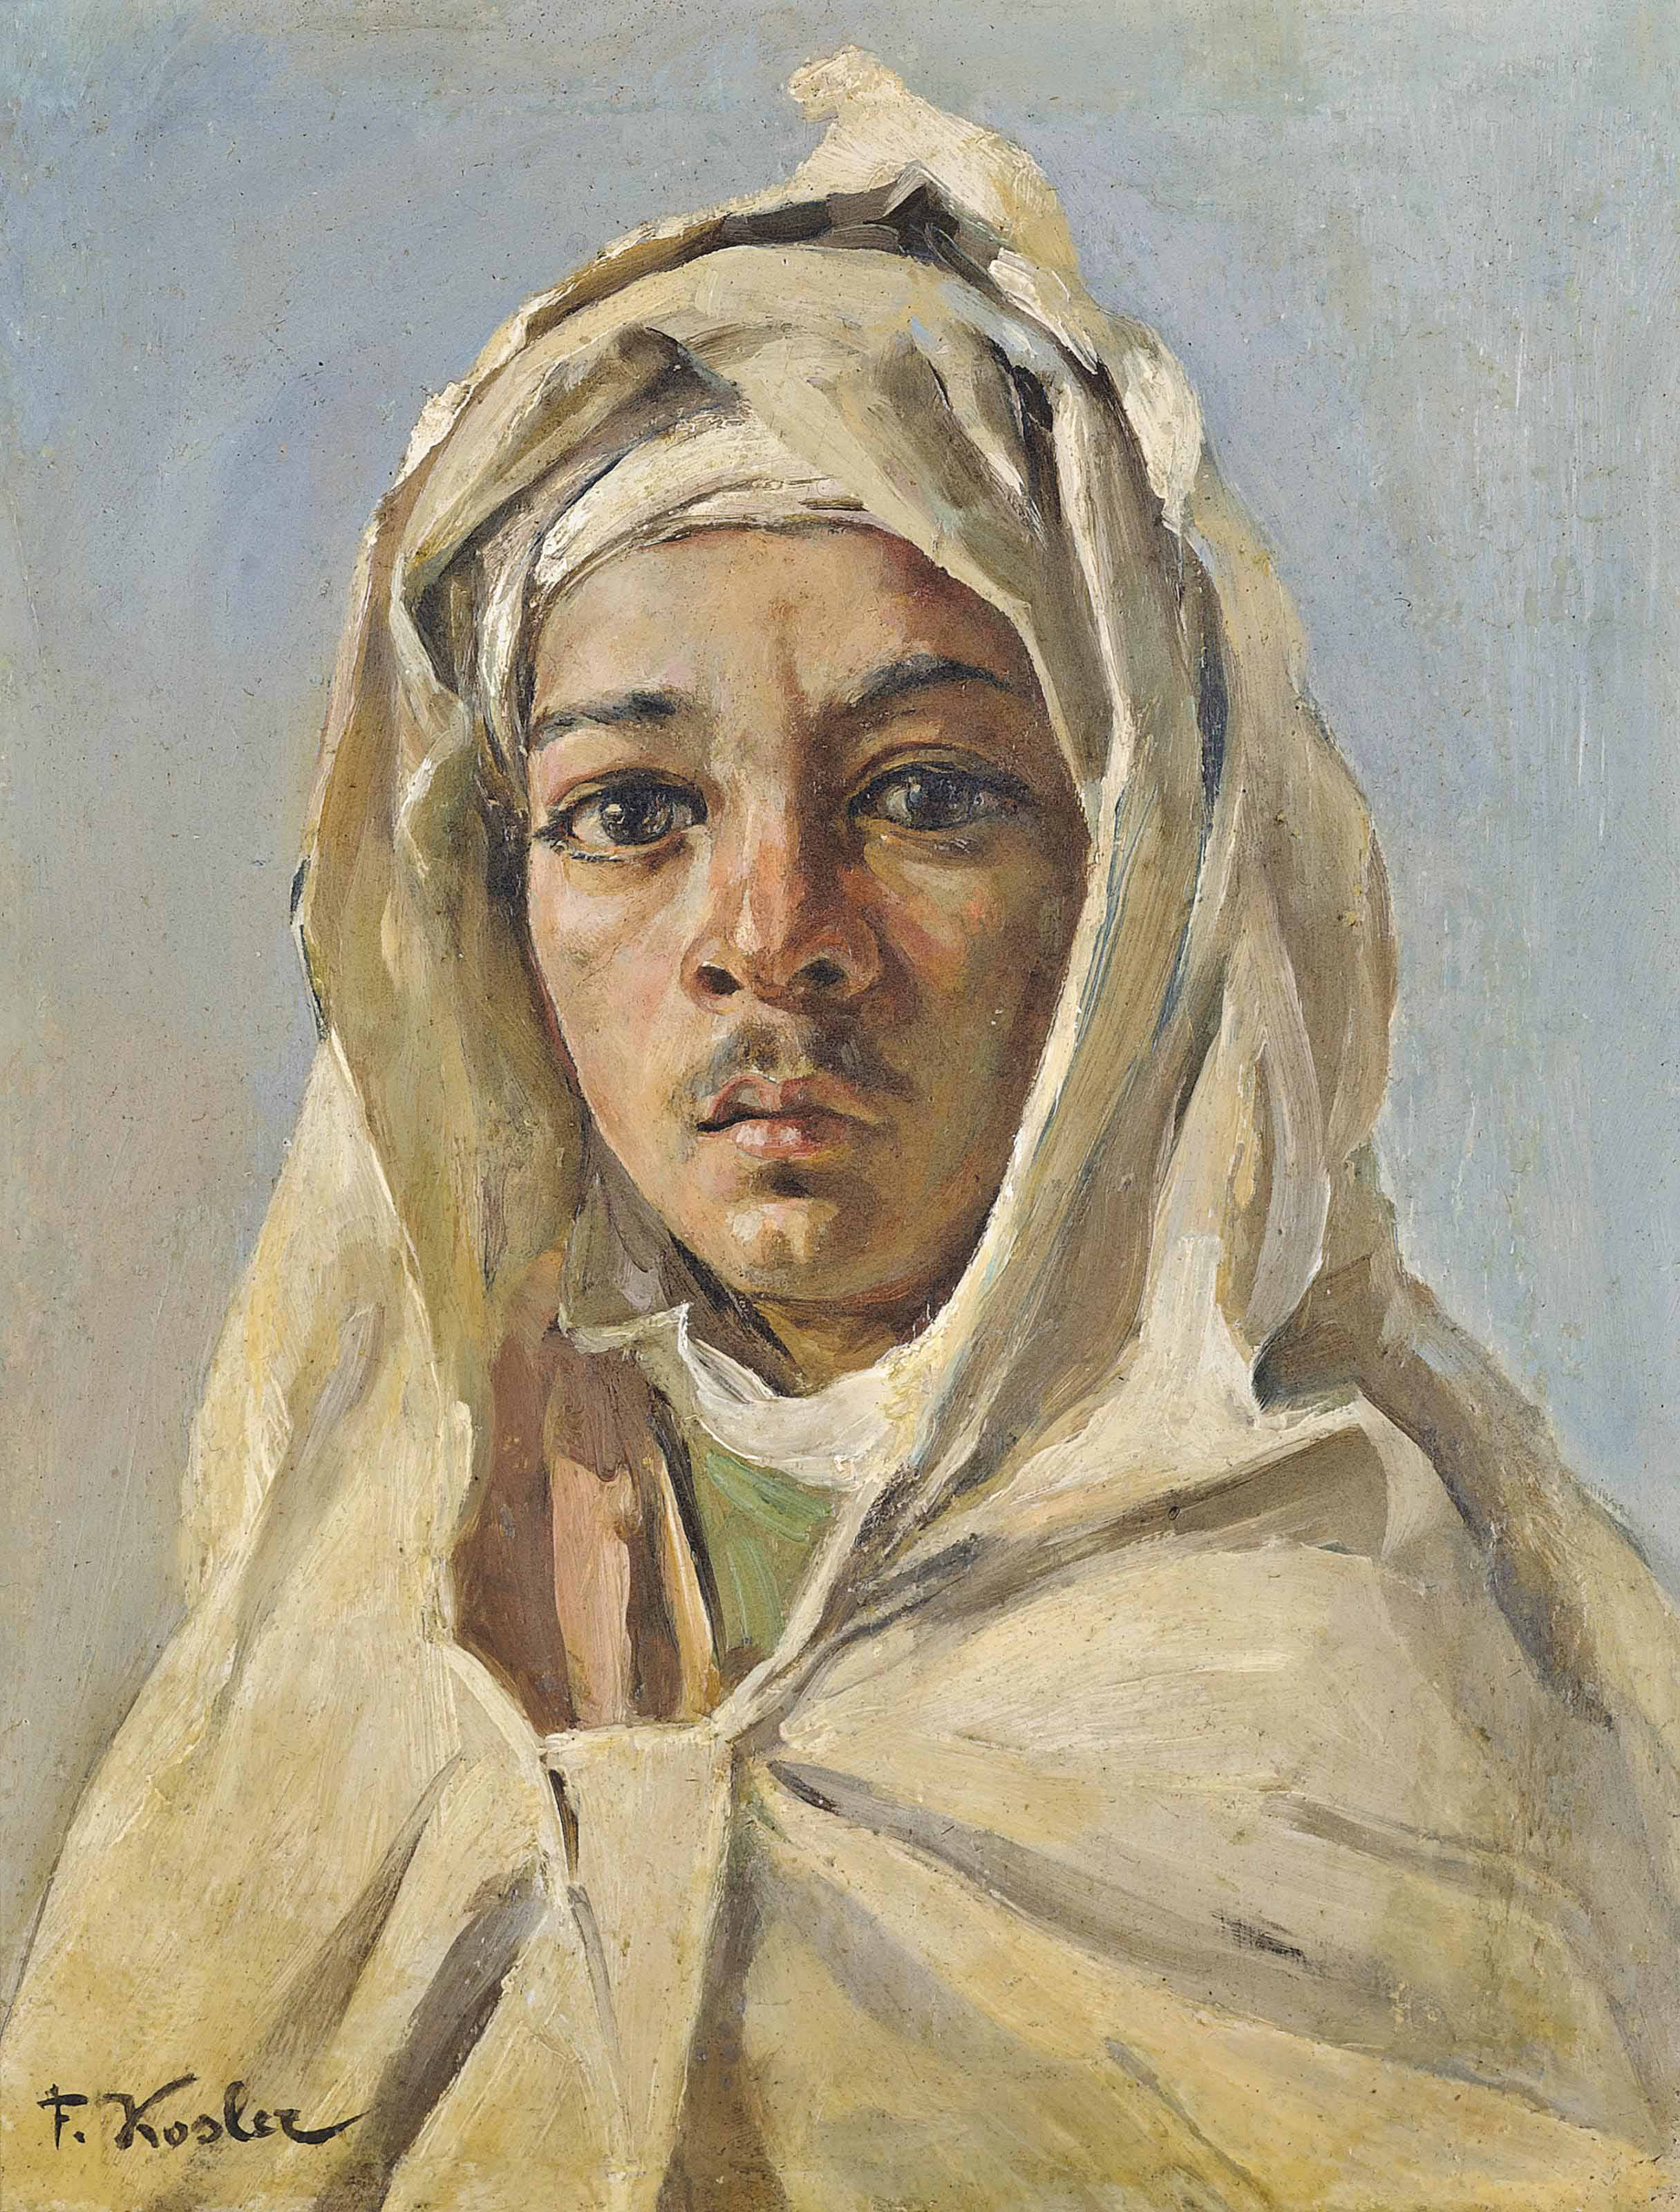 A young Bedouin